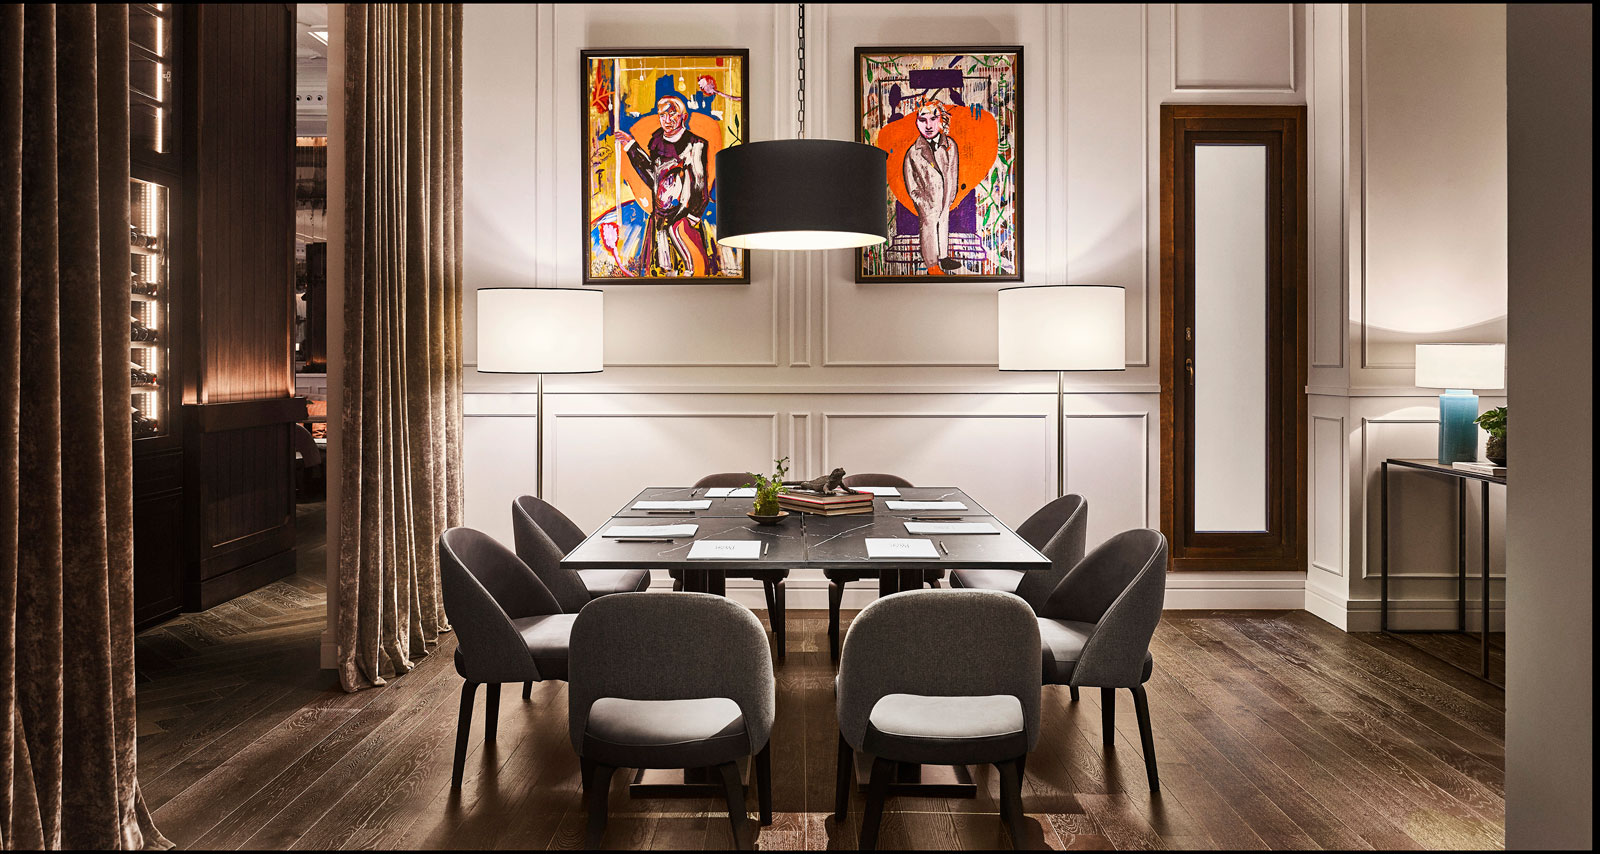 Meeting room at Grand Hotel Inglés in Madrid